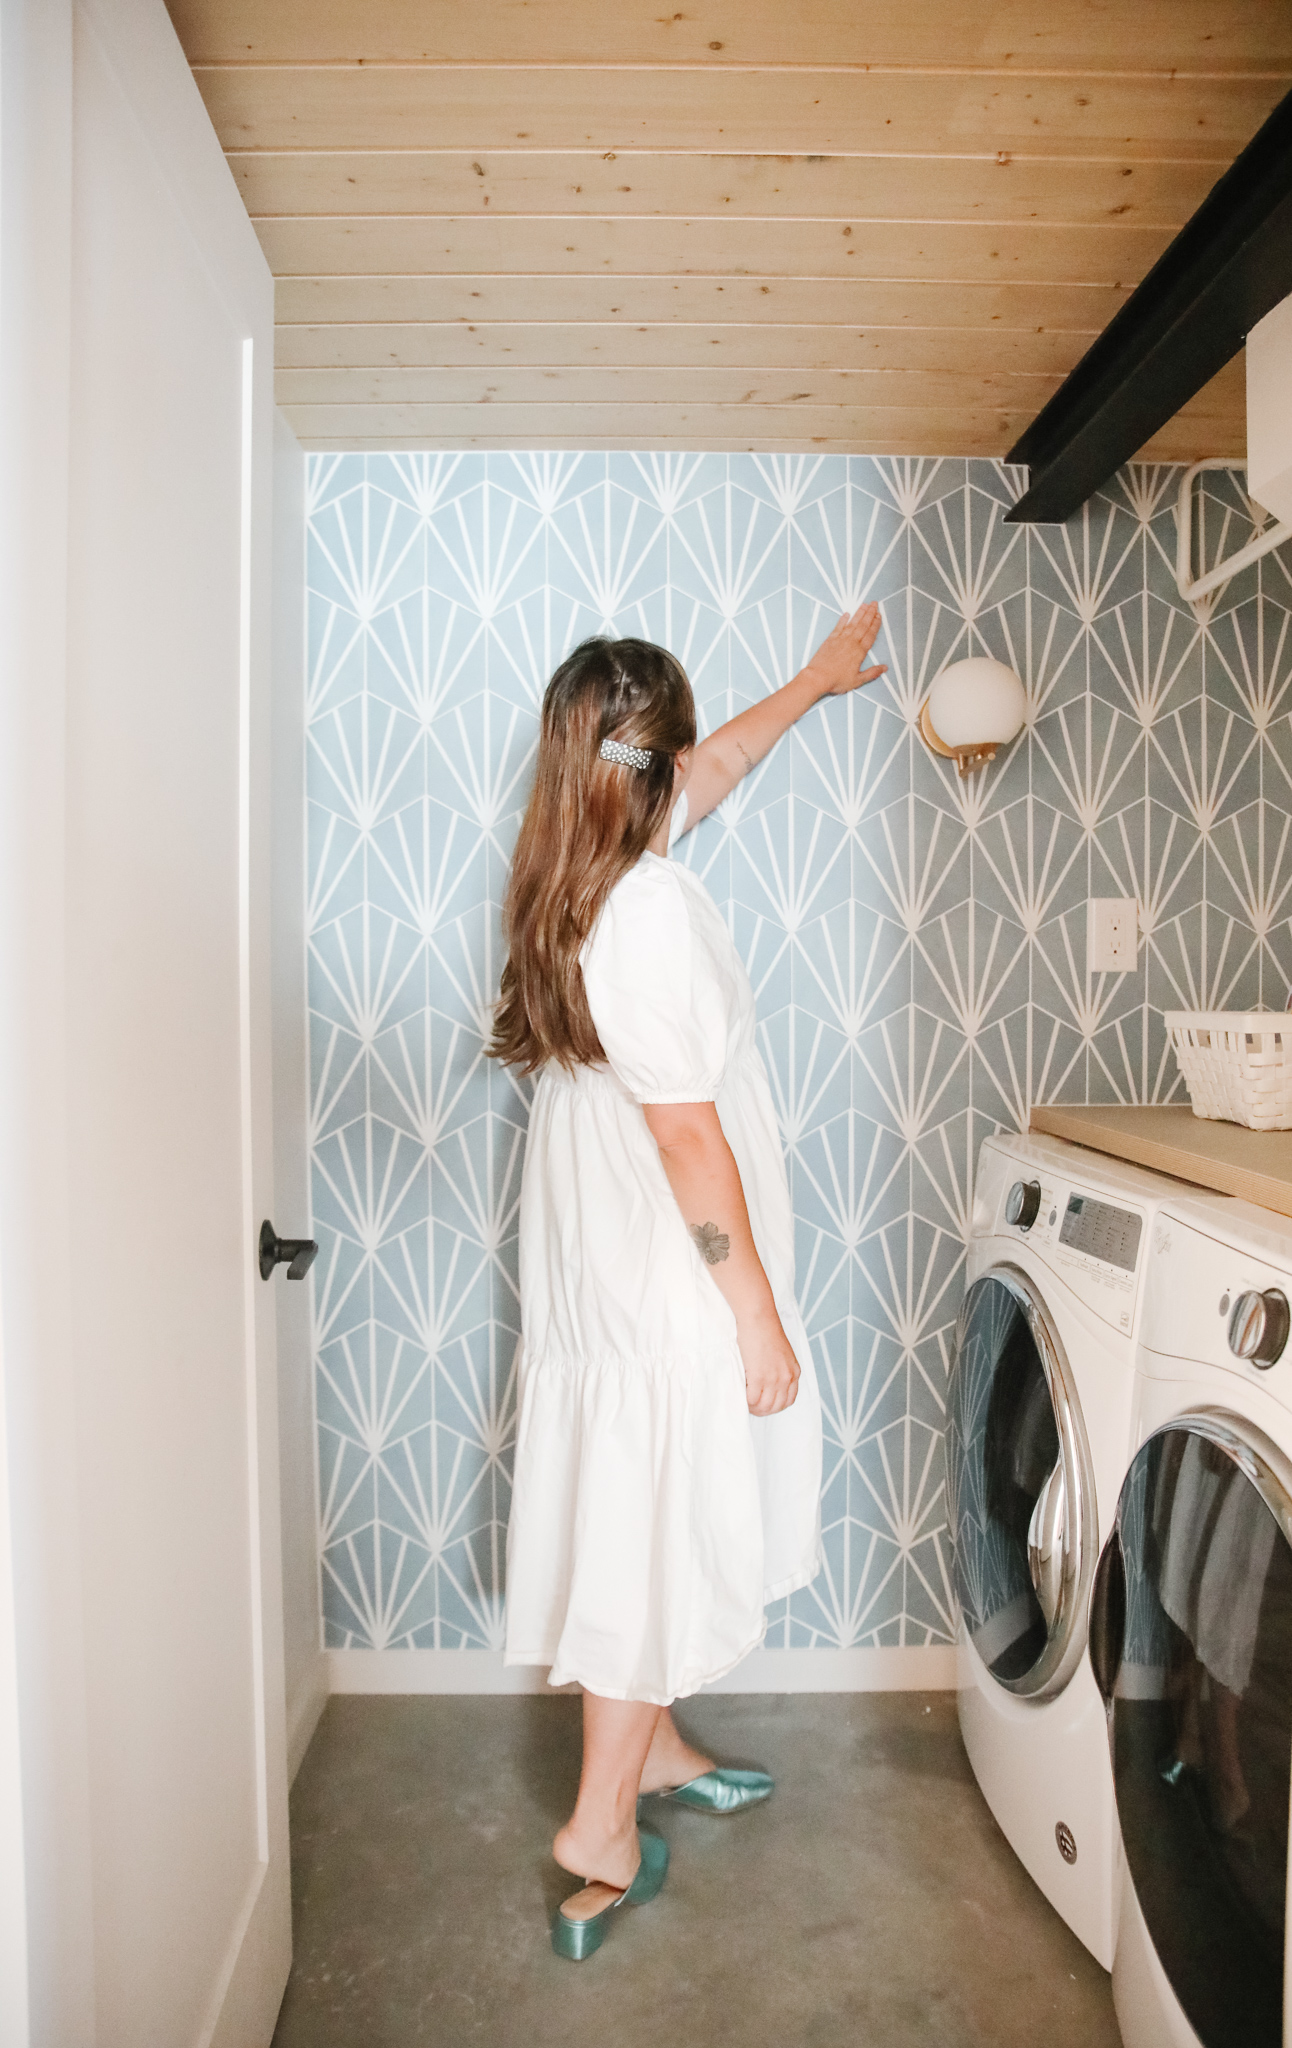 Laundry room DIY project - tile wall